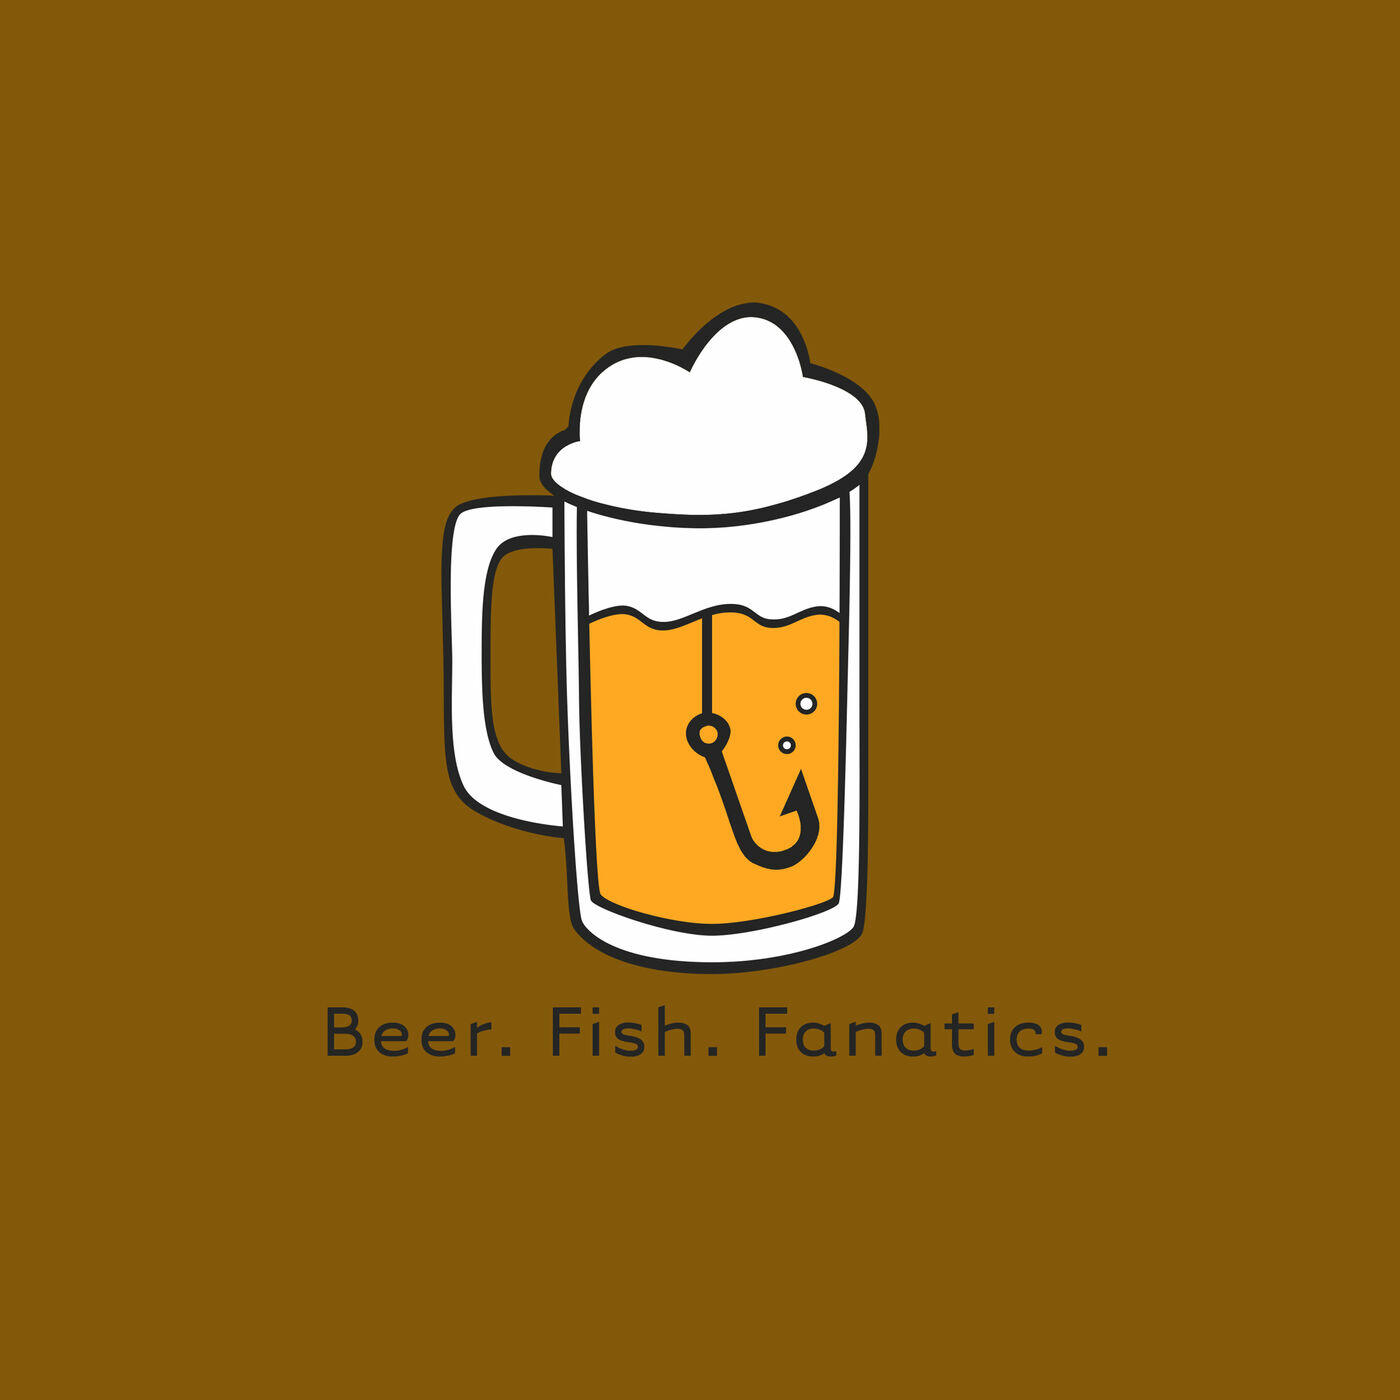 Beer Fish Fanatics